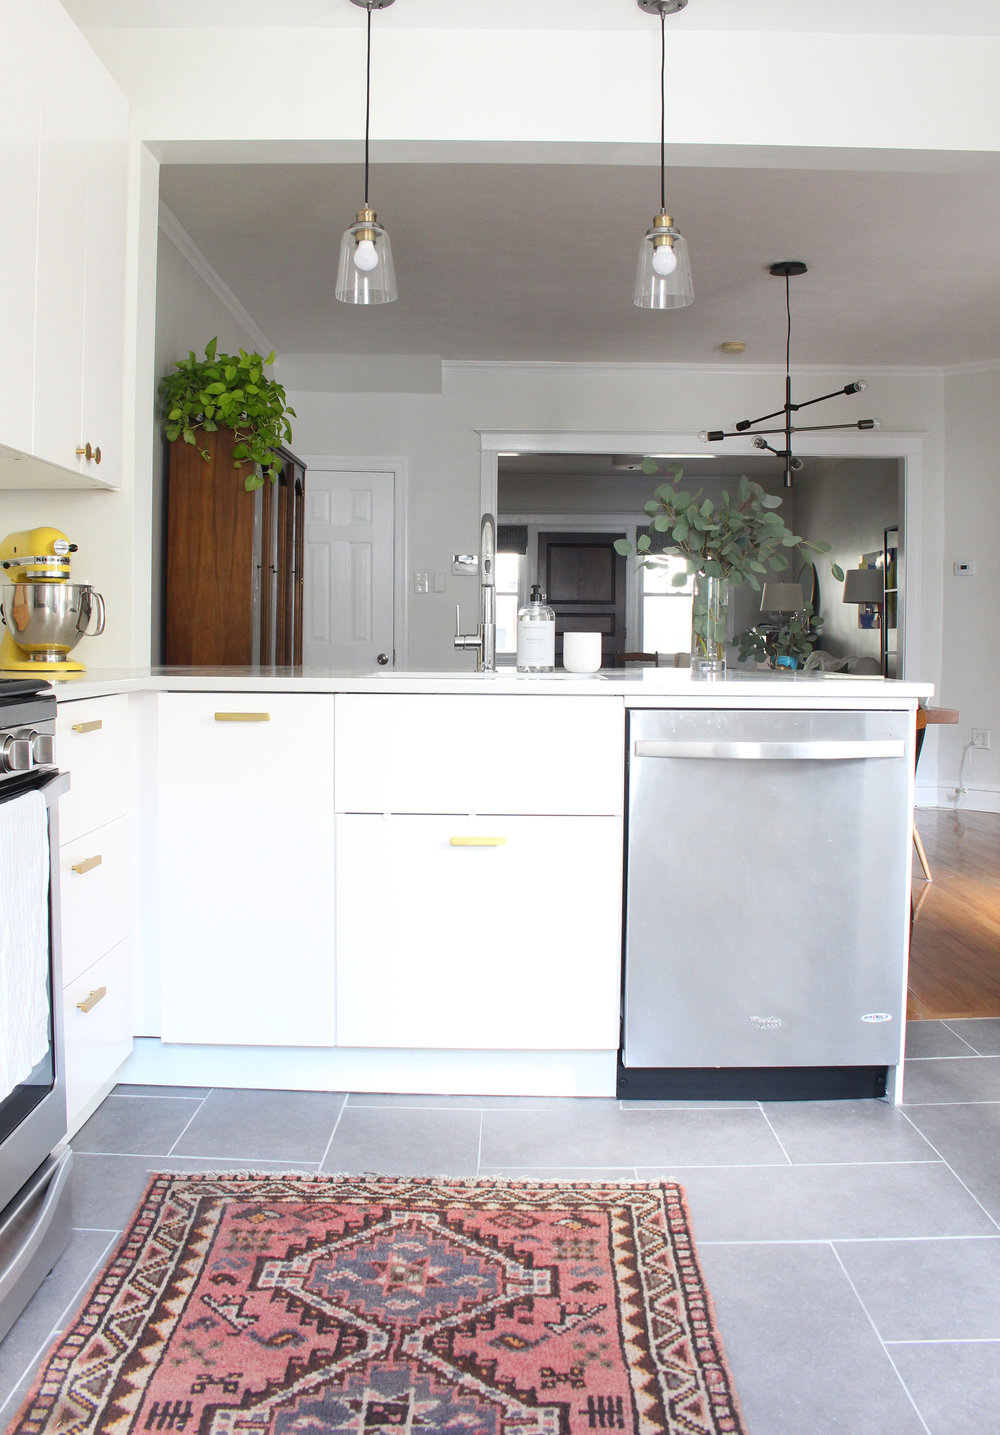 Modern-White-Kitchen-Renovation-Ikea-Sektion-22.jpg